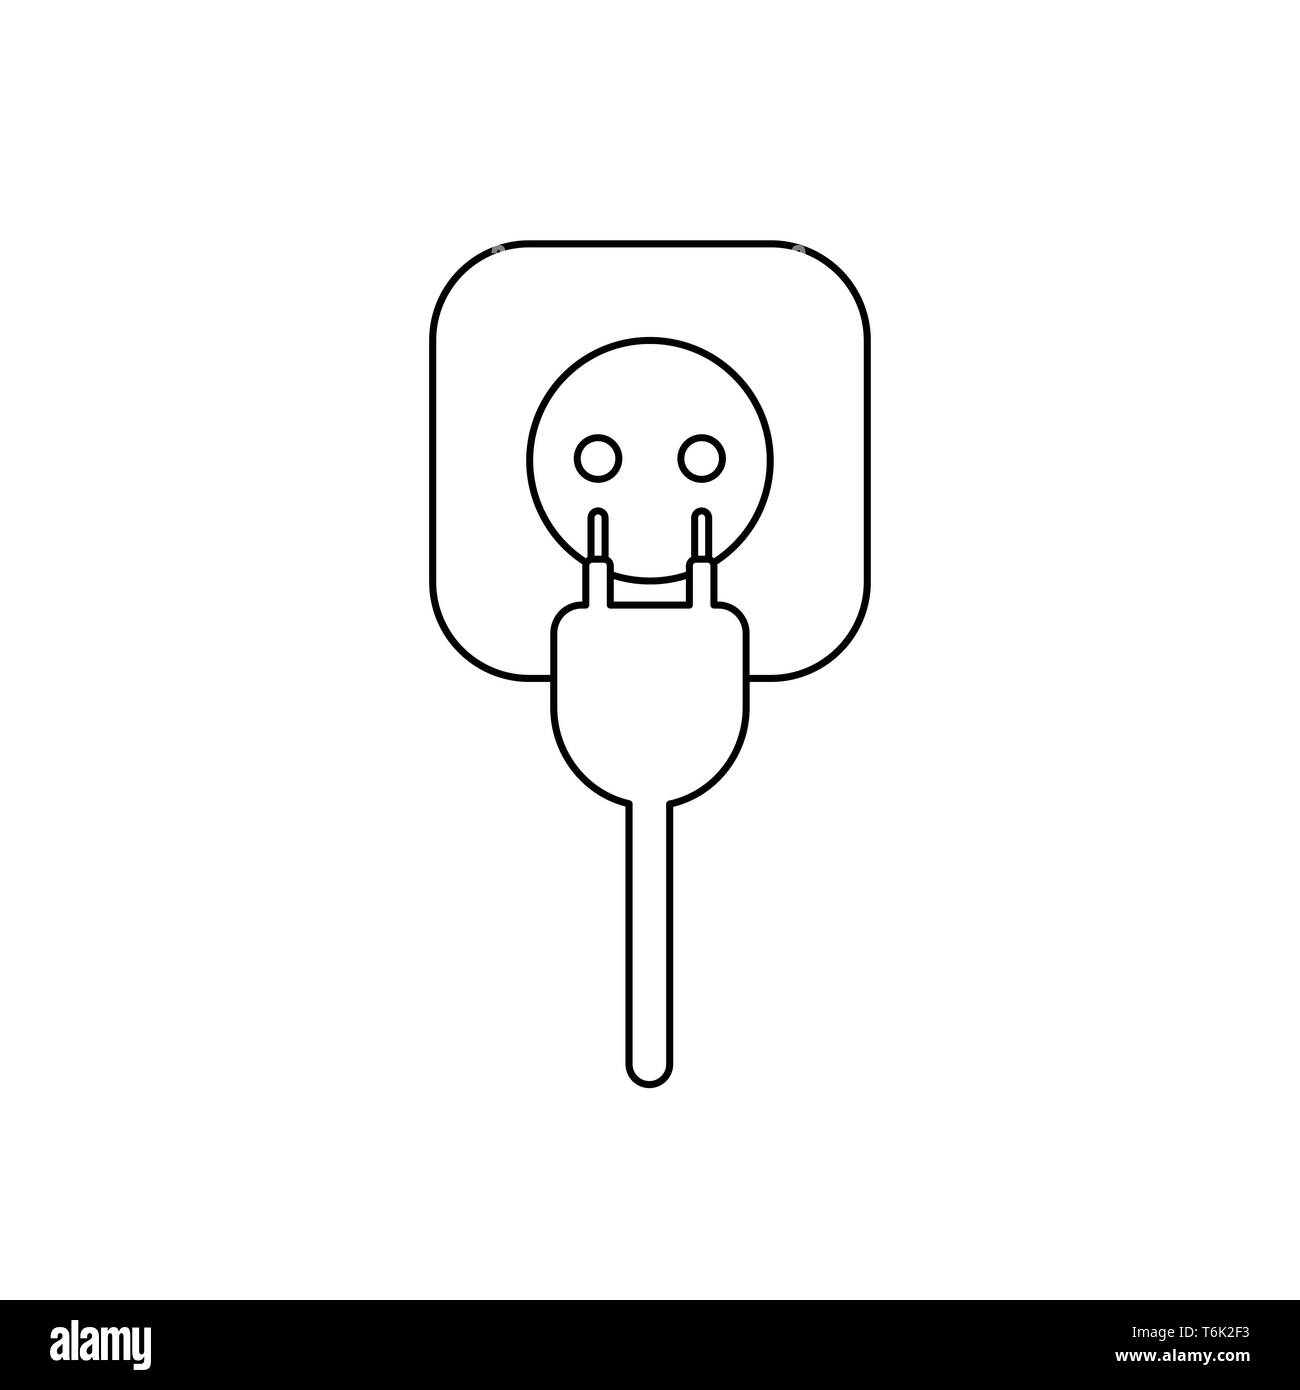 Vector icon concept of plug with cable and outlet. Black outlines. Stock Vector